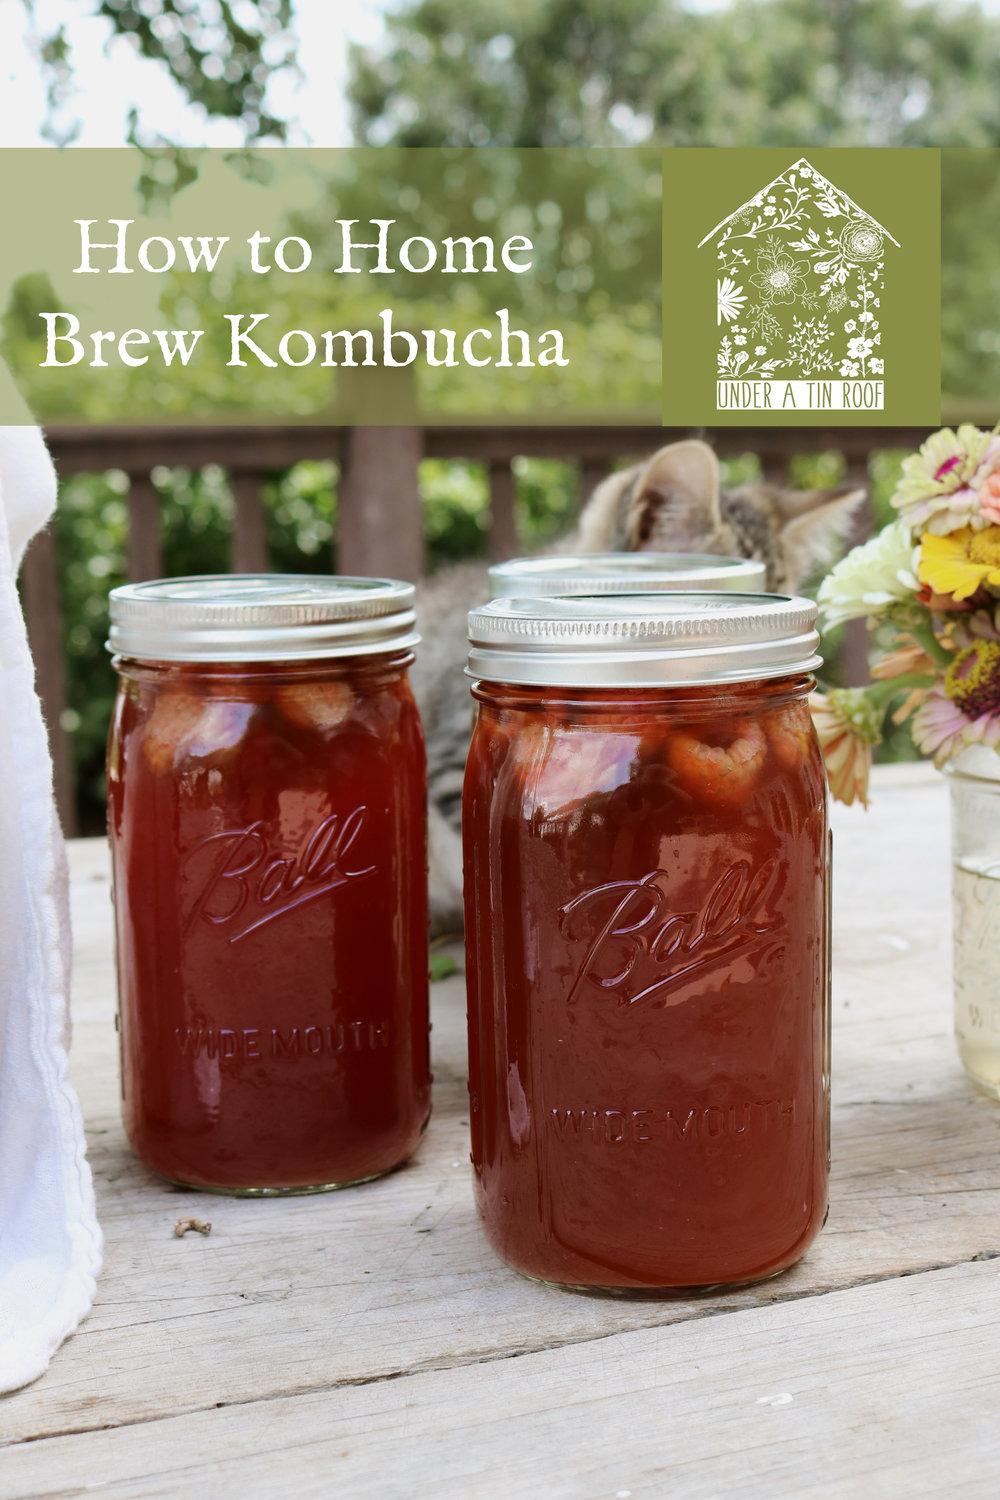 How to Make Kombucha - Under A Tin Roof Blog